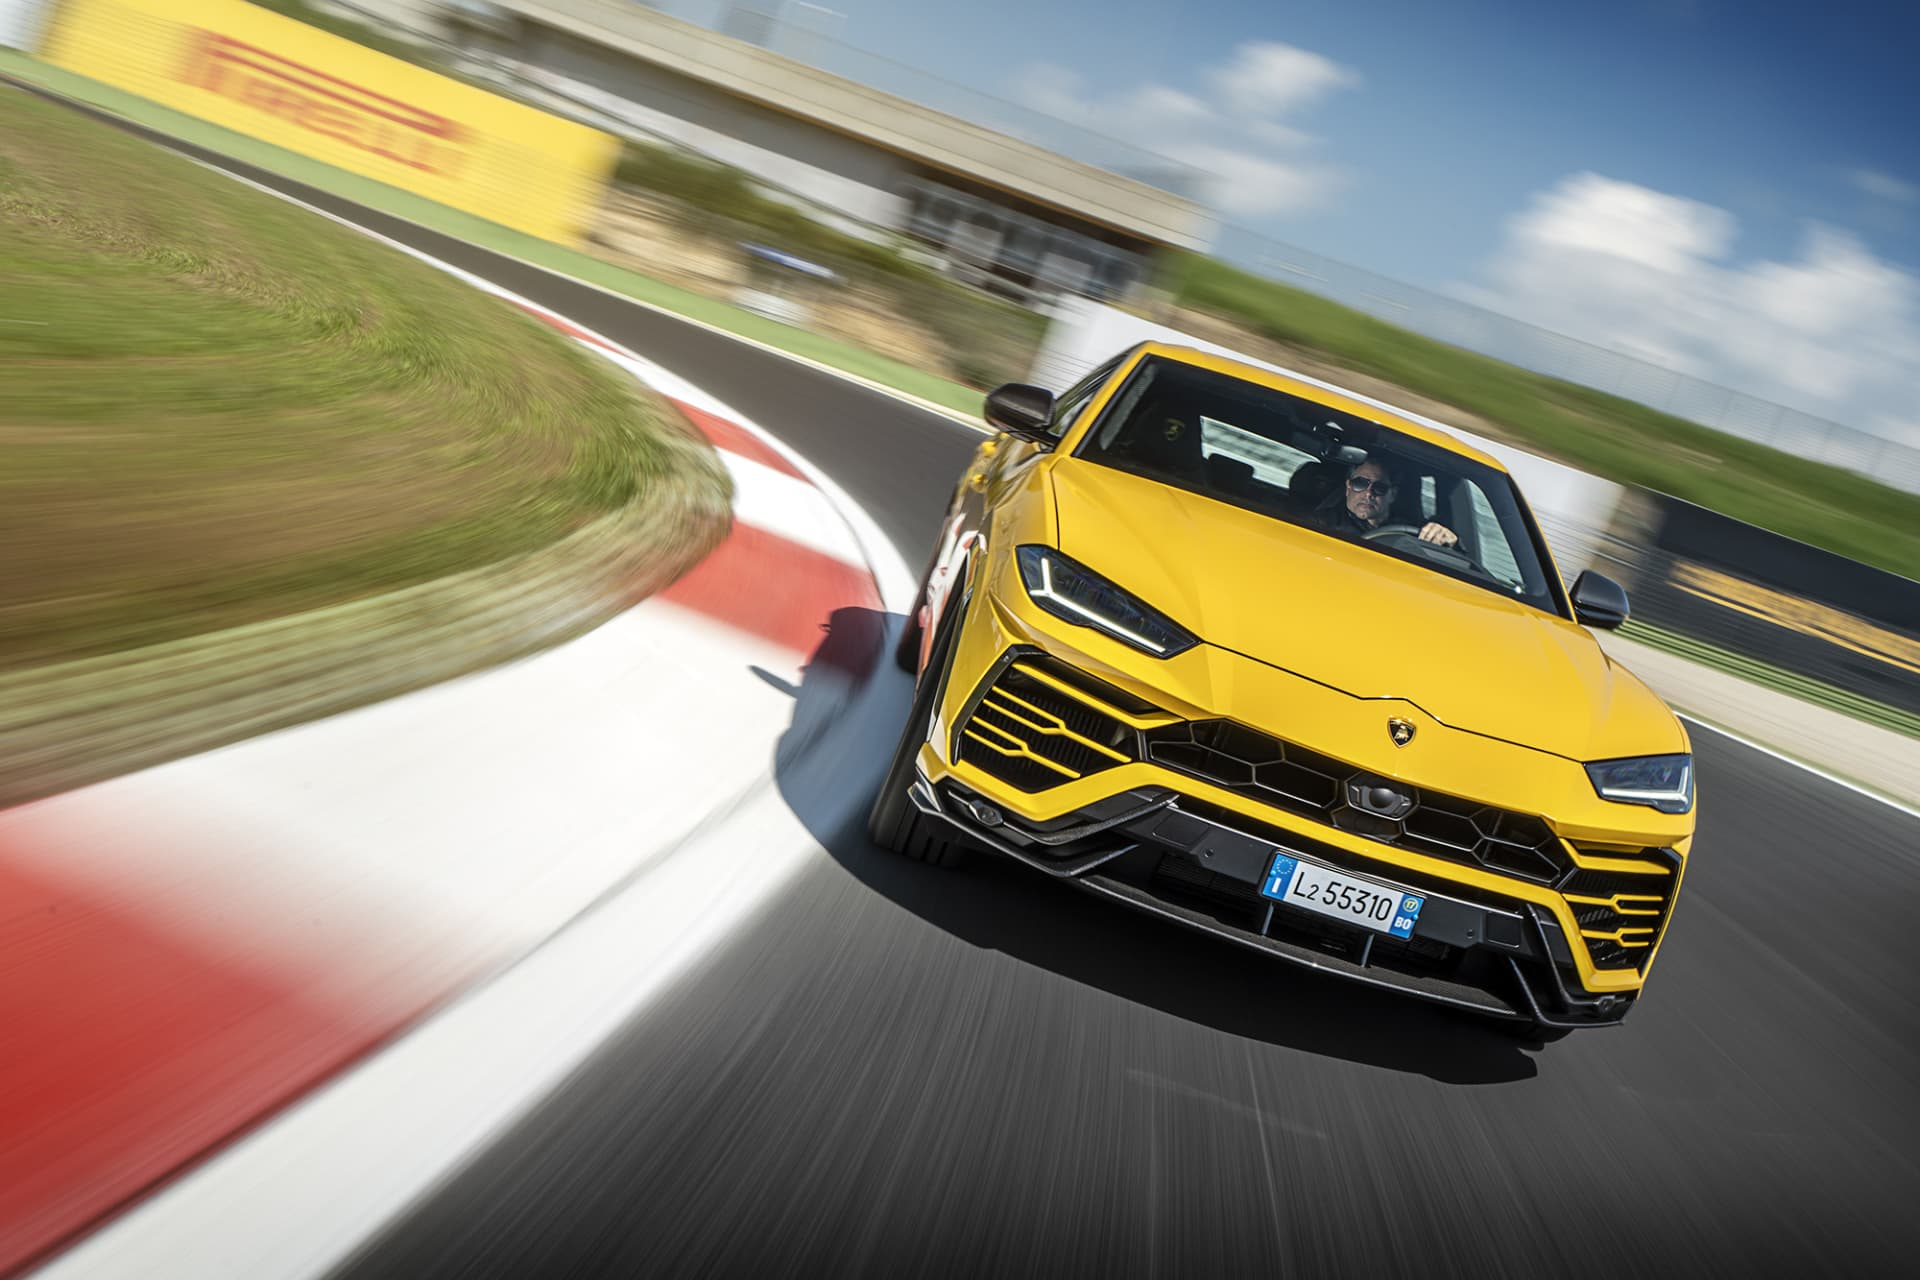 Urus is really fast on the track, actually just a few seconds under the Huracán on the Vallelunga track.